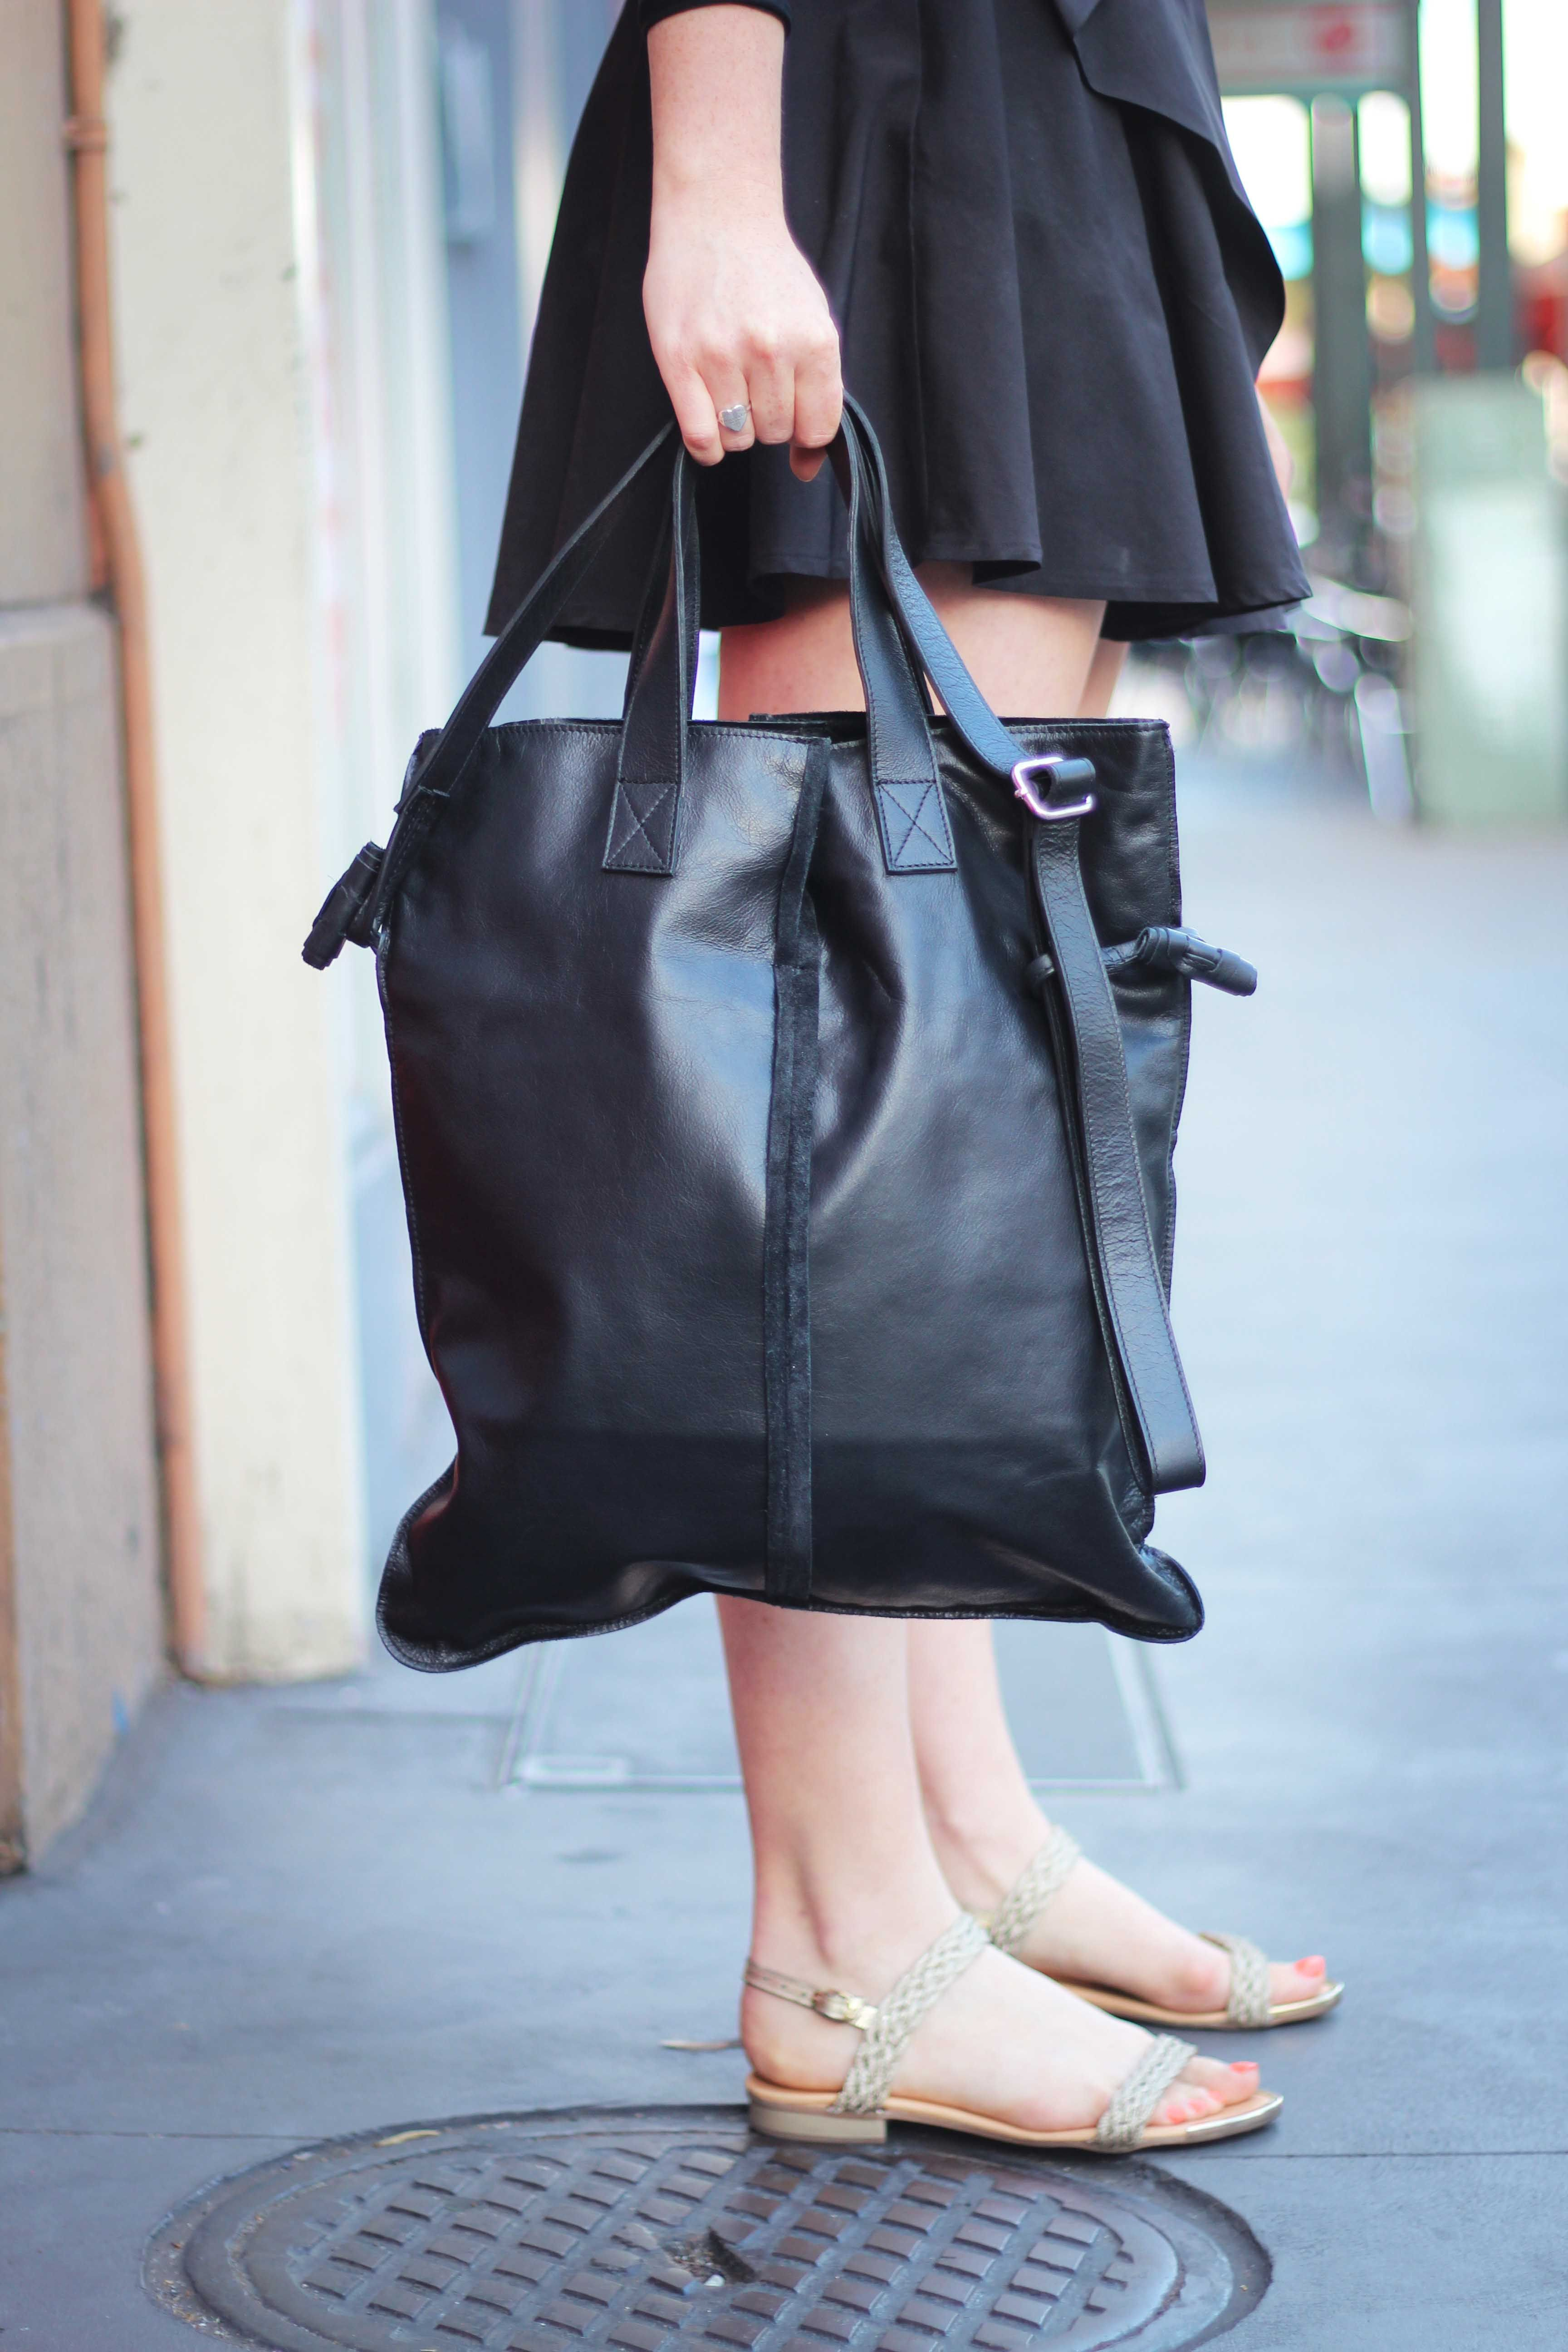 a41b353927cafe Laura Di Maggio bags now in store. Italian leather